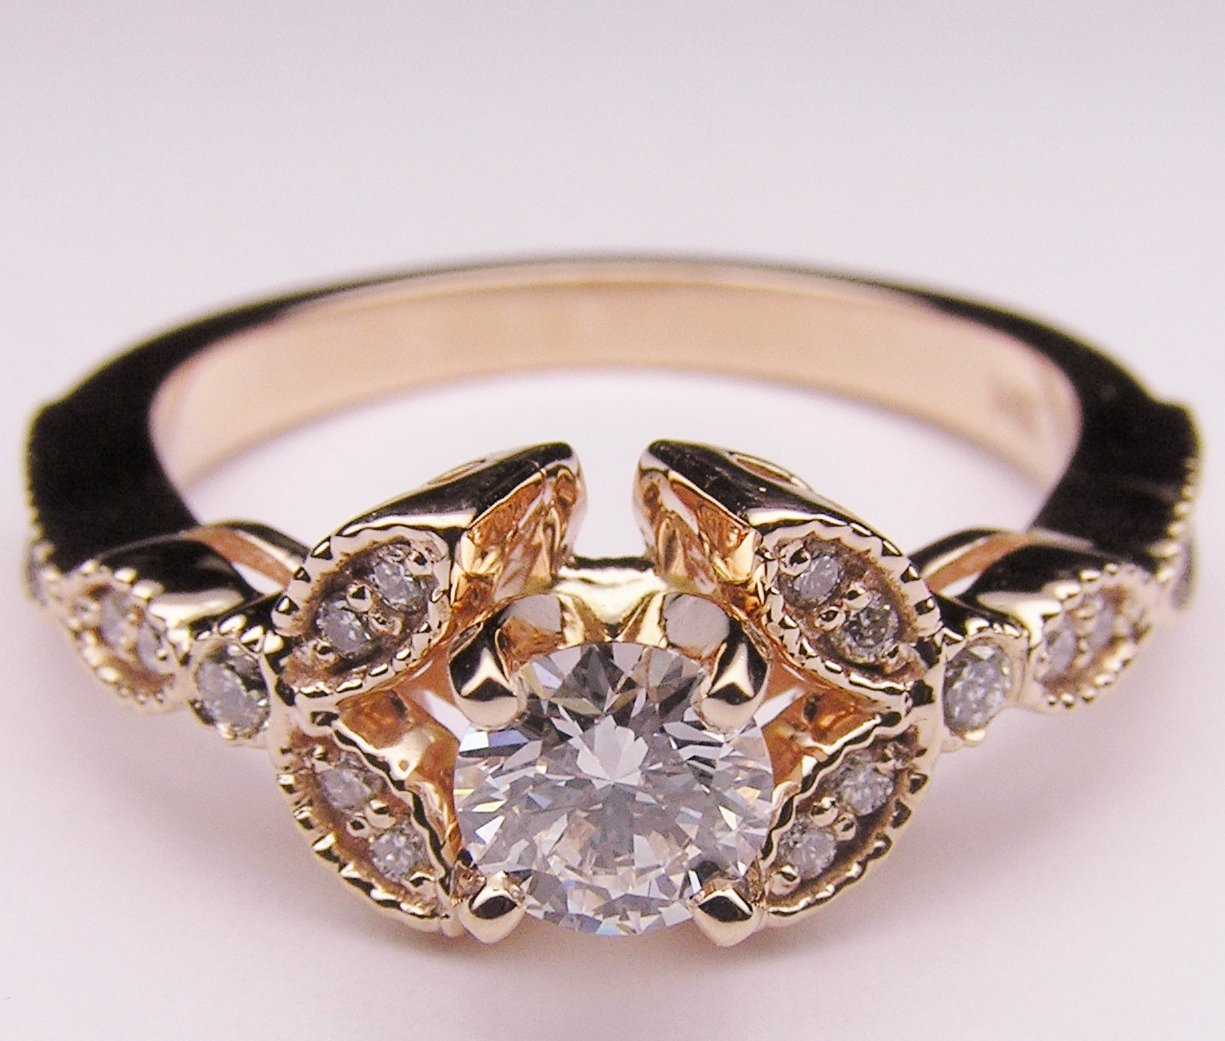 Engagement Ring Round Diamond Floral from MDC Diamonds